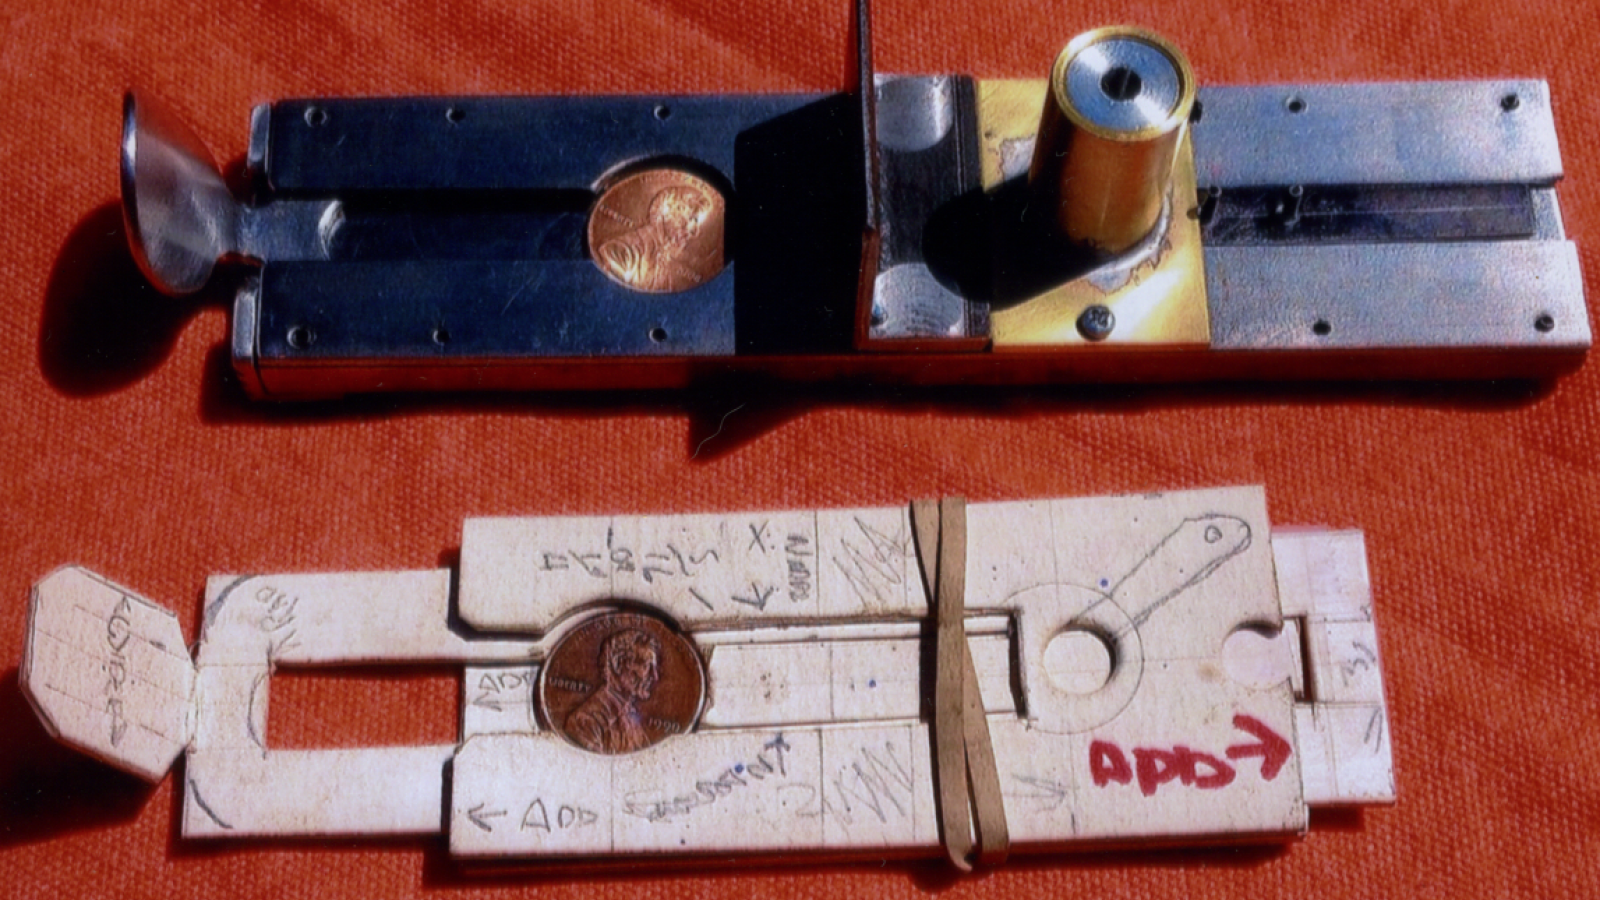 Coin mechanism for larger sculpture